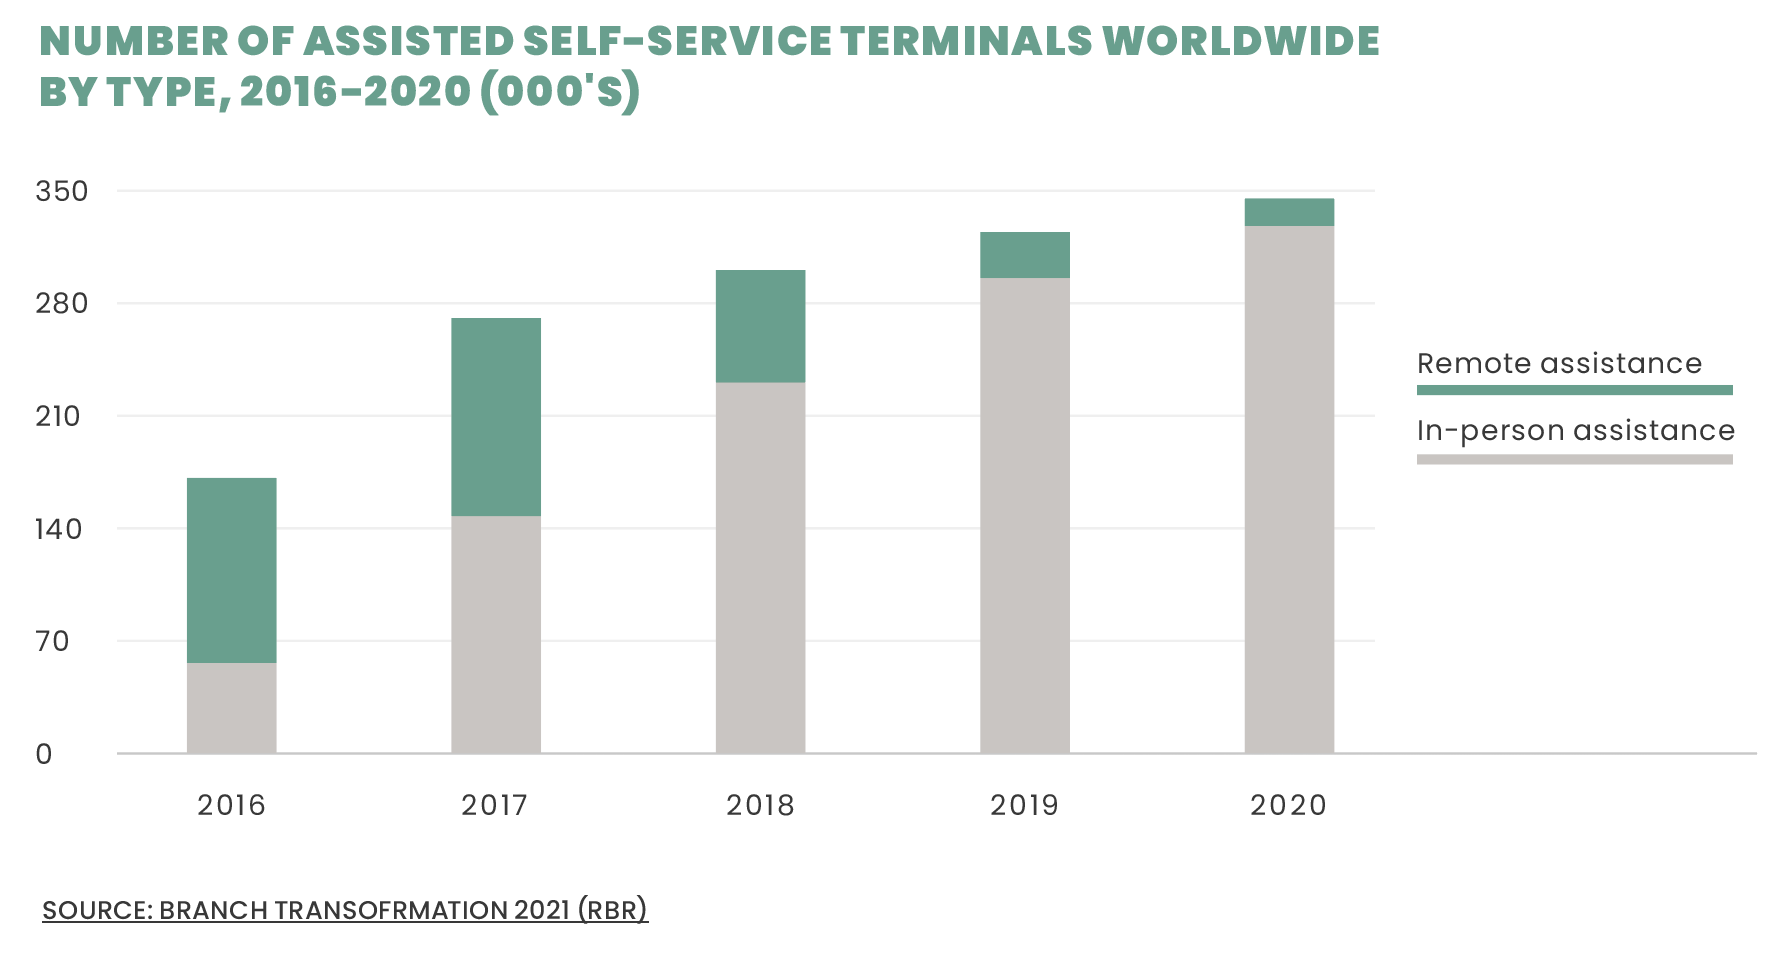 number of assisted self-service terminals